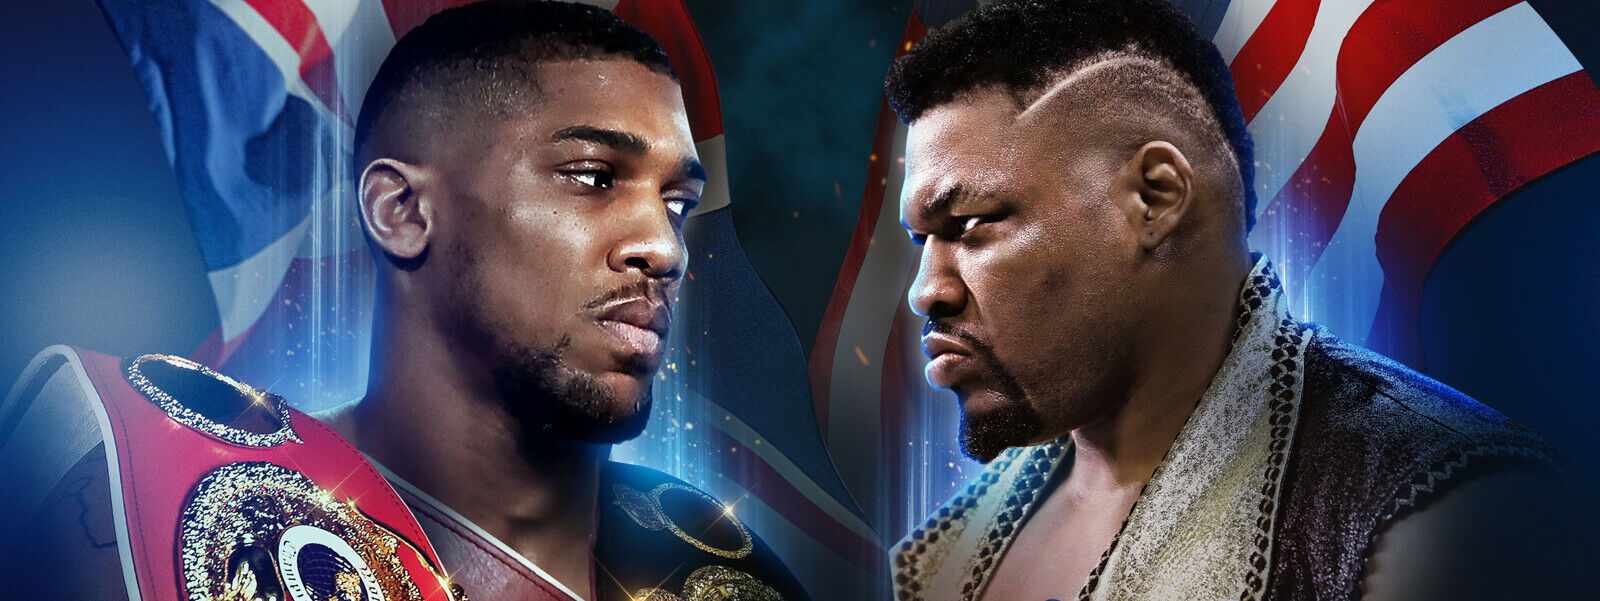 OFFICIAL Matchroom Boxing: Anthony Joshua vs Jarrell Miller